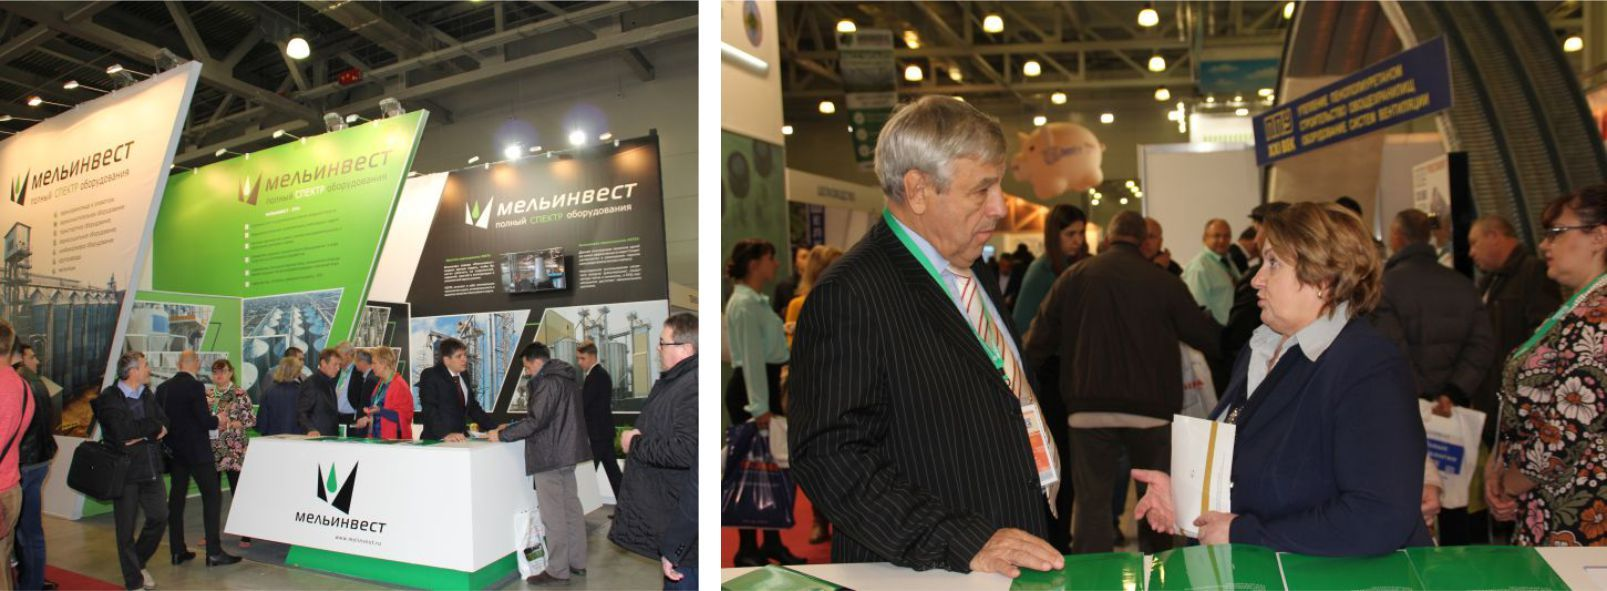 "Melinvest JSC participated in the International Agro-Industrial Exhibition ""Golden Autumn – 2015"" held from October 8 to 11 in Moscow in the International Exhibition Centre ""Crocus Expo"""